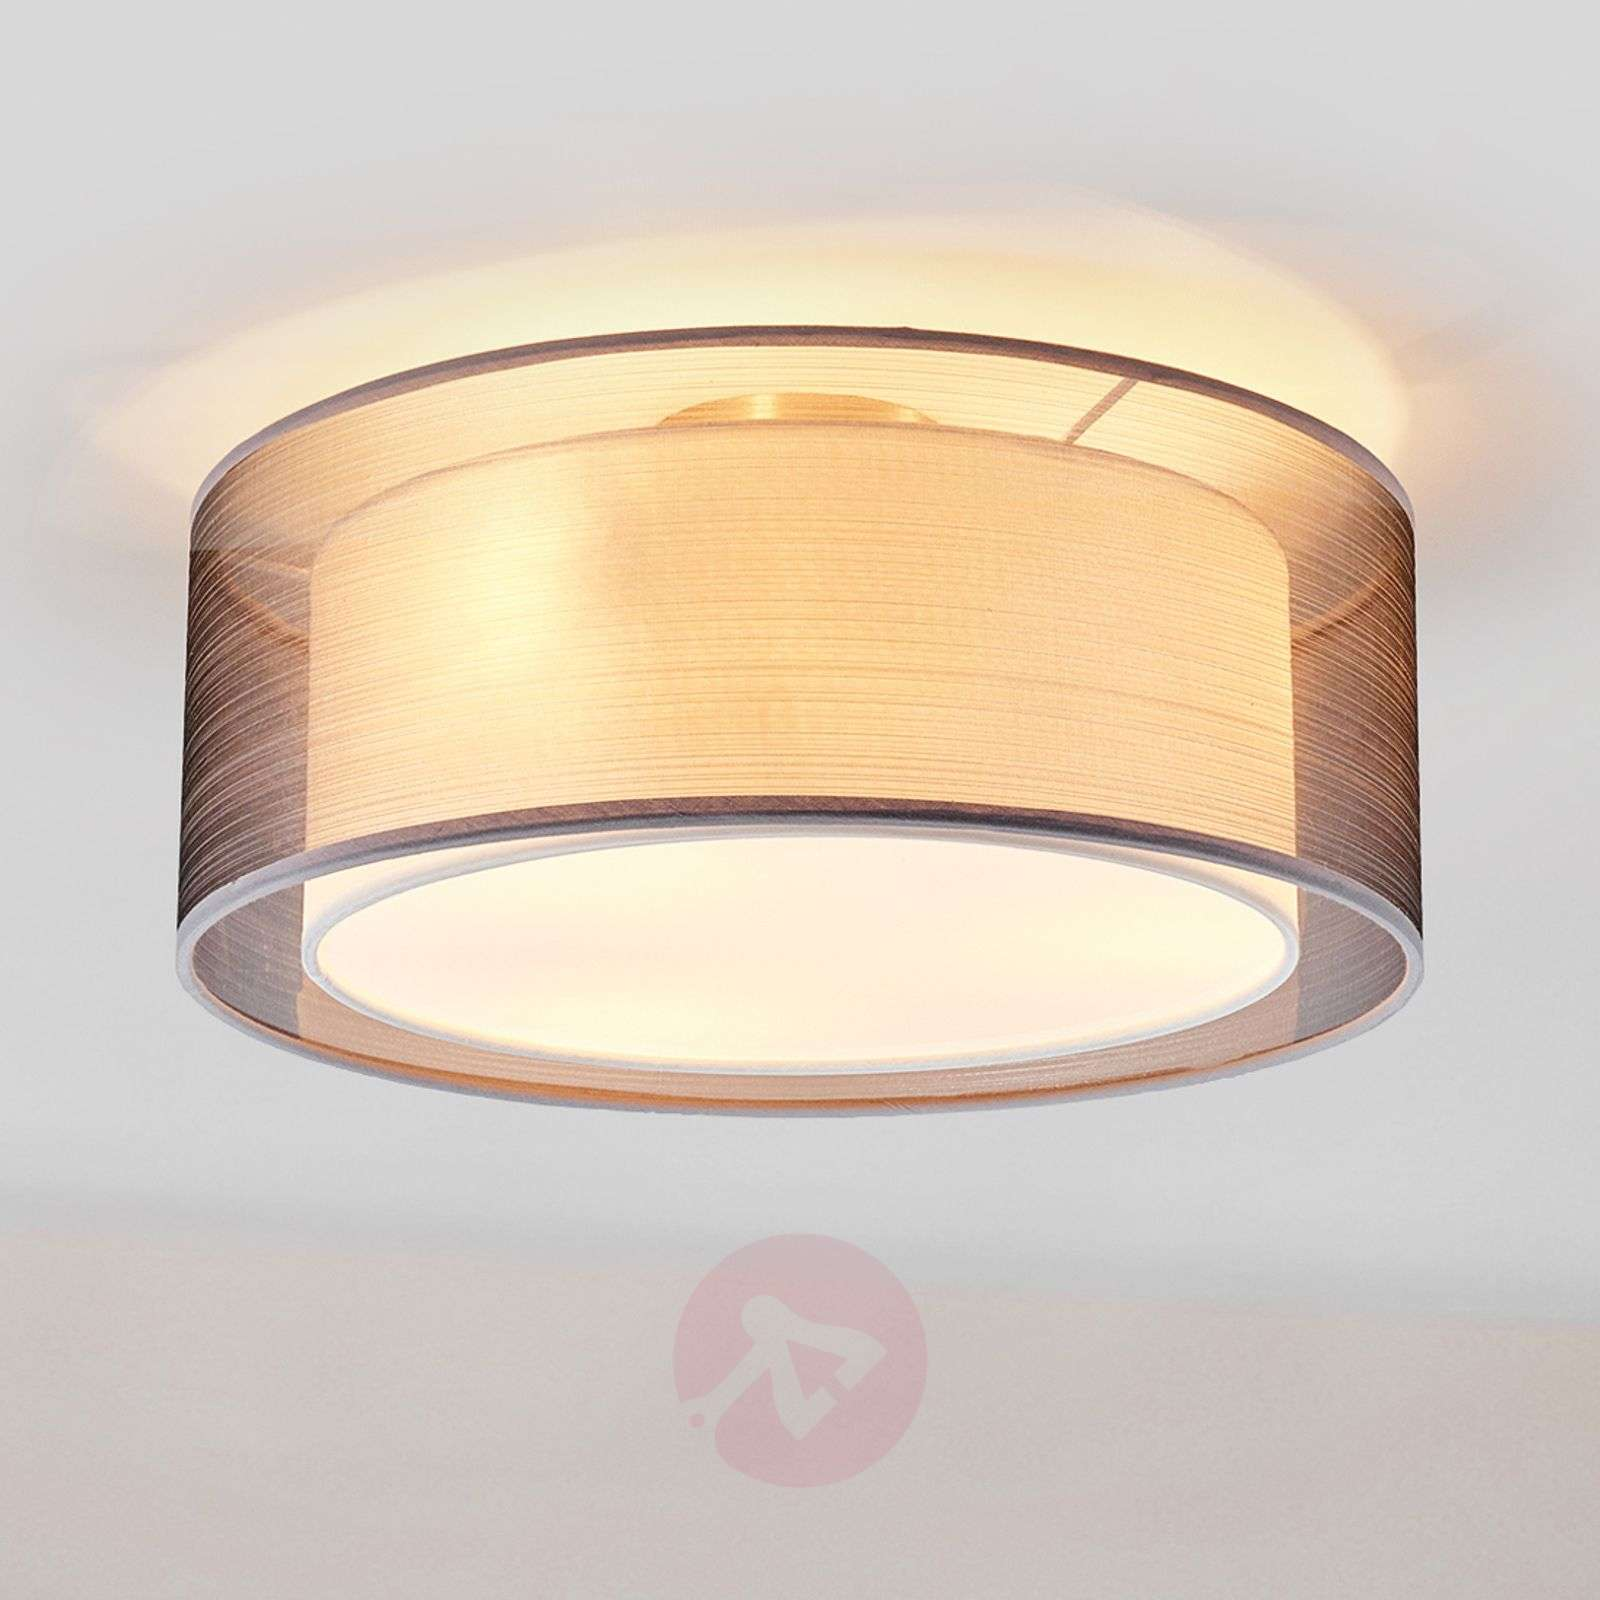 Nica fabric ceiling light in grey-4018001-02